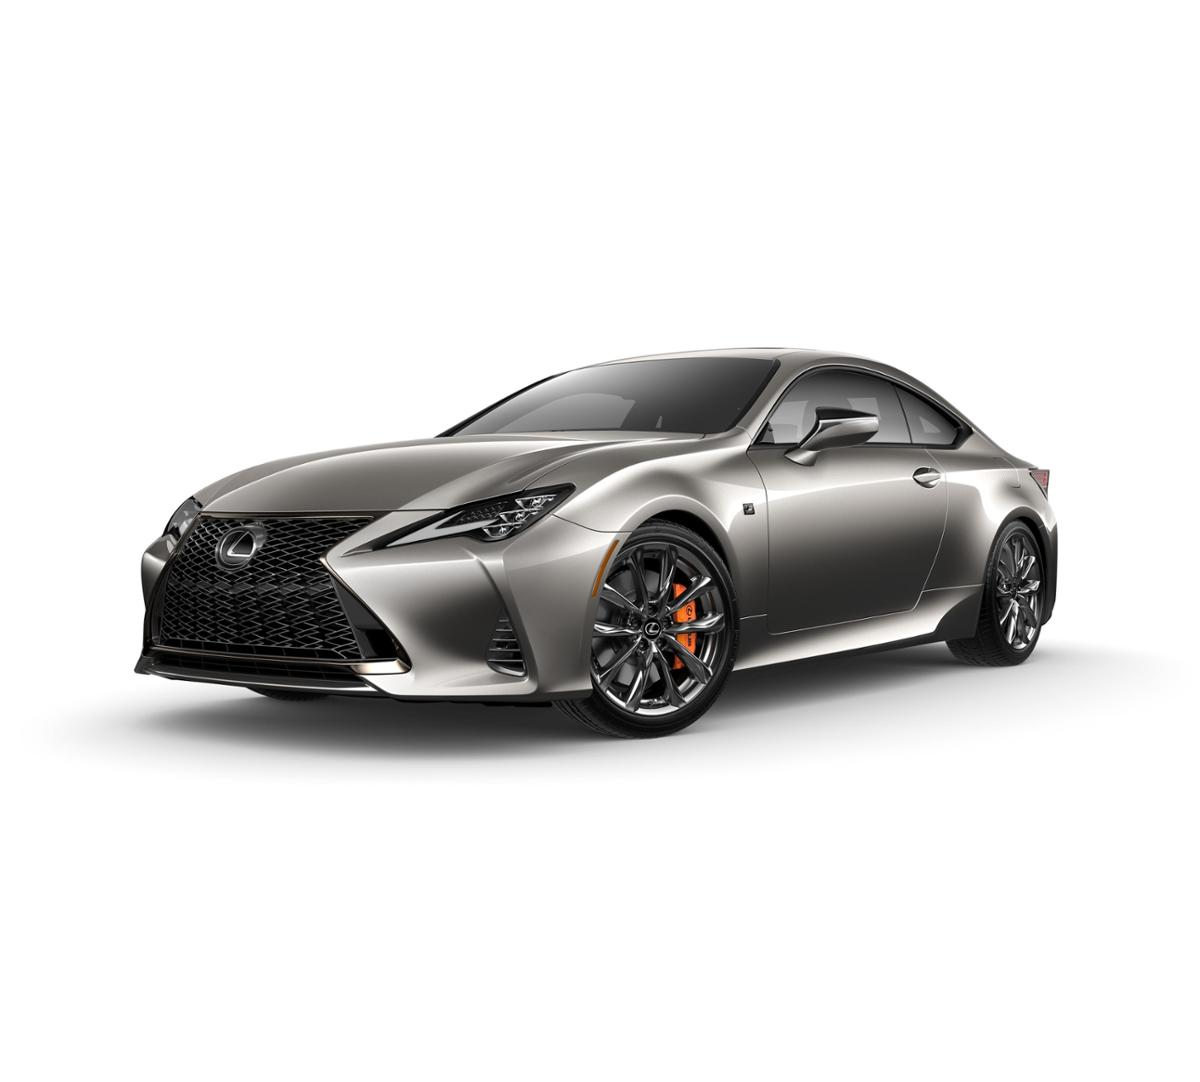 2014 Lexus Is F Sport For Sale: New Atomic Silver 2019 Lexus RC 350 F SPORT For Sale